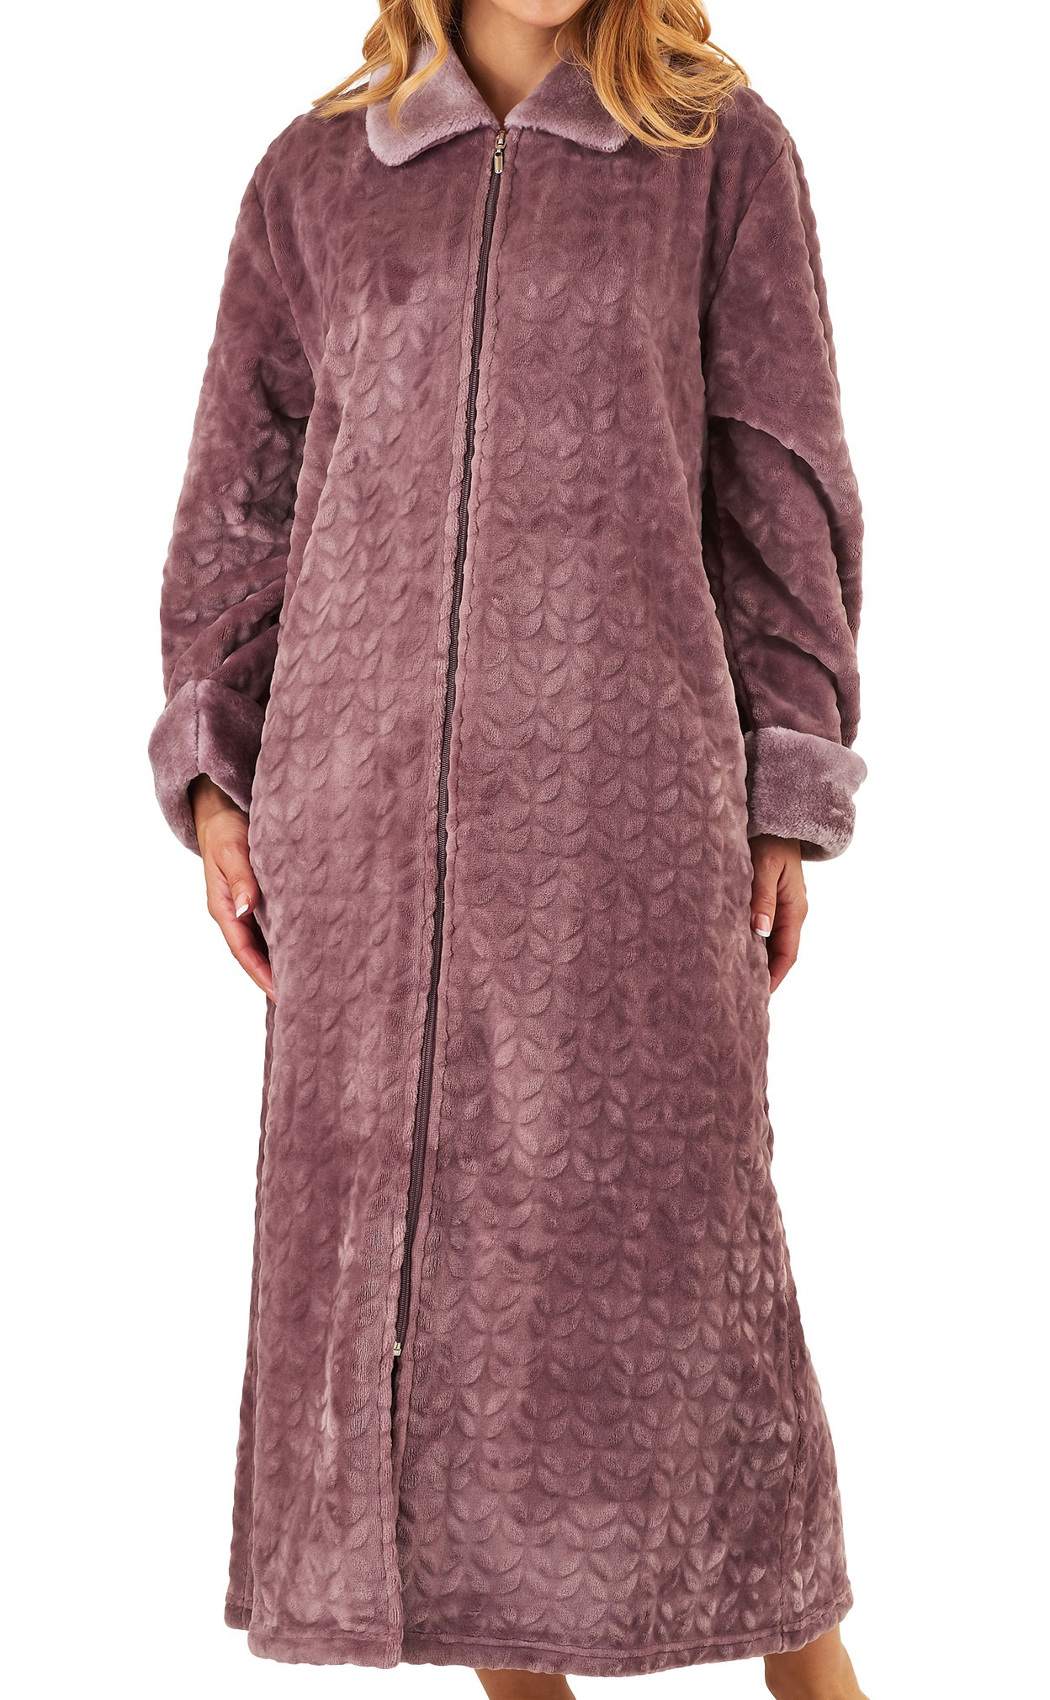 Robe De Chambre Polaire Fermeture Eclair Slenderella Ladies Zip Up Dressing Gown Super Soft Faux